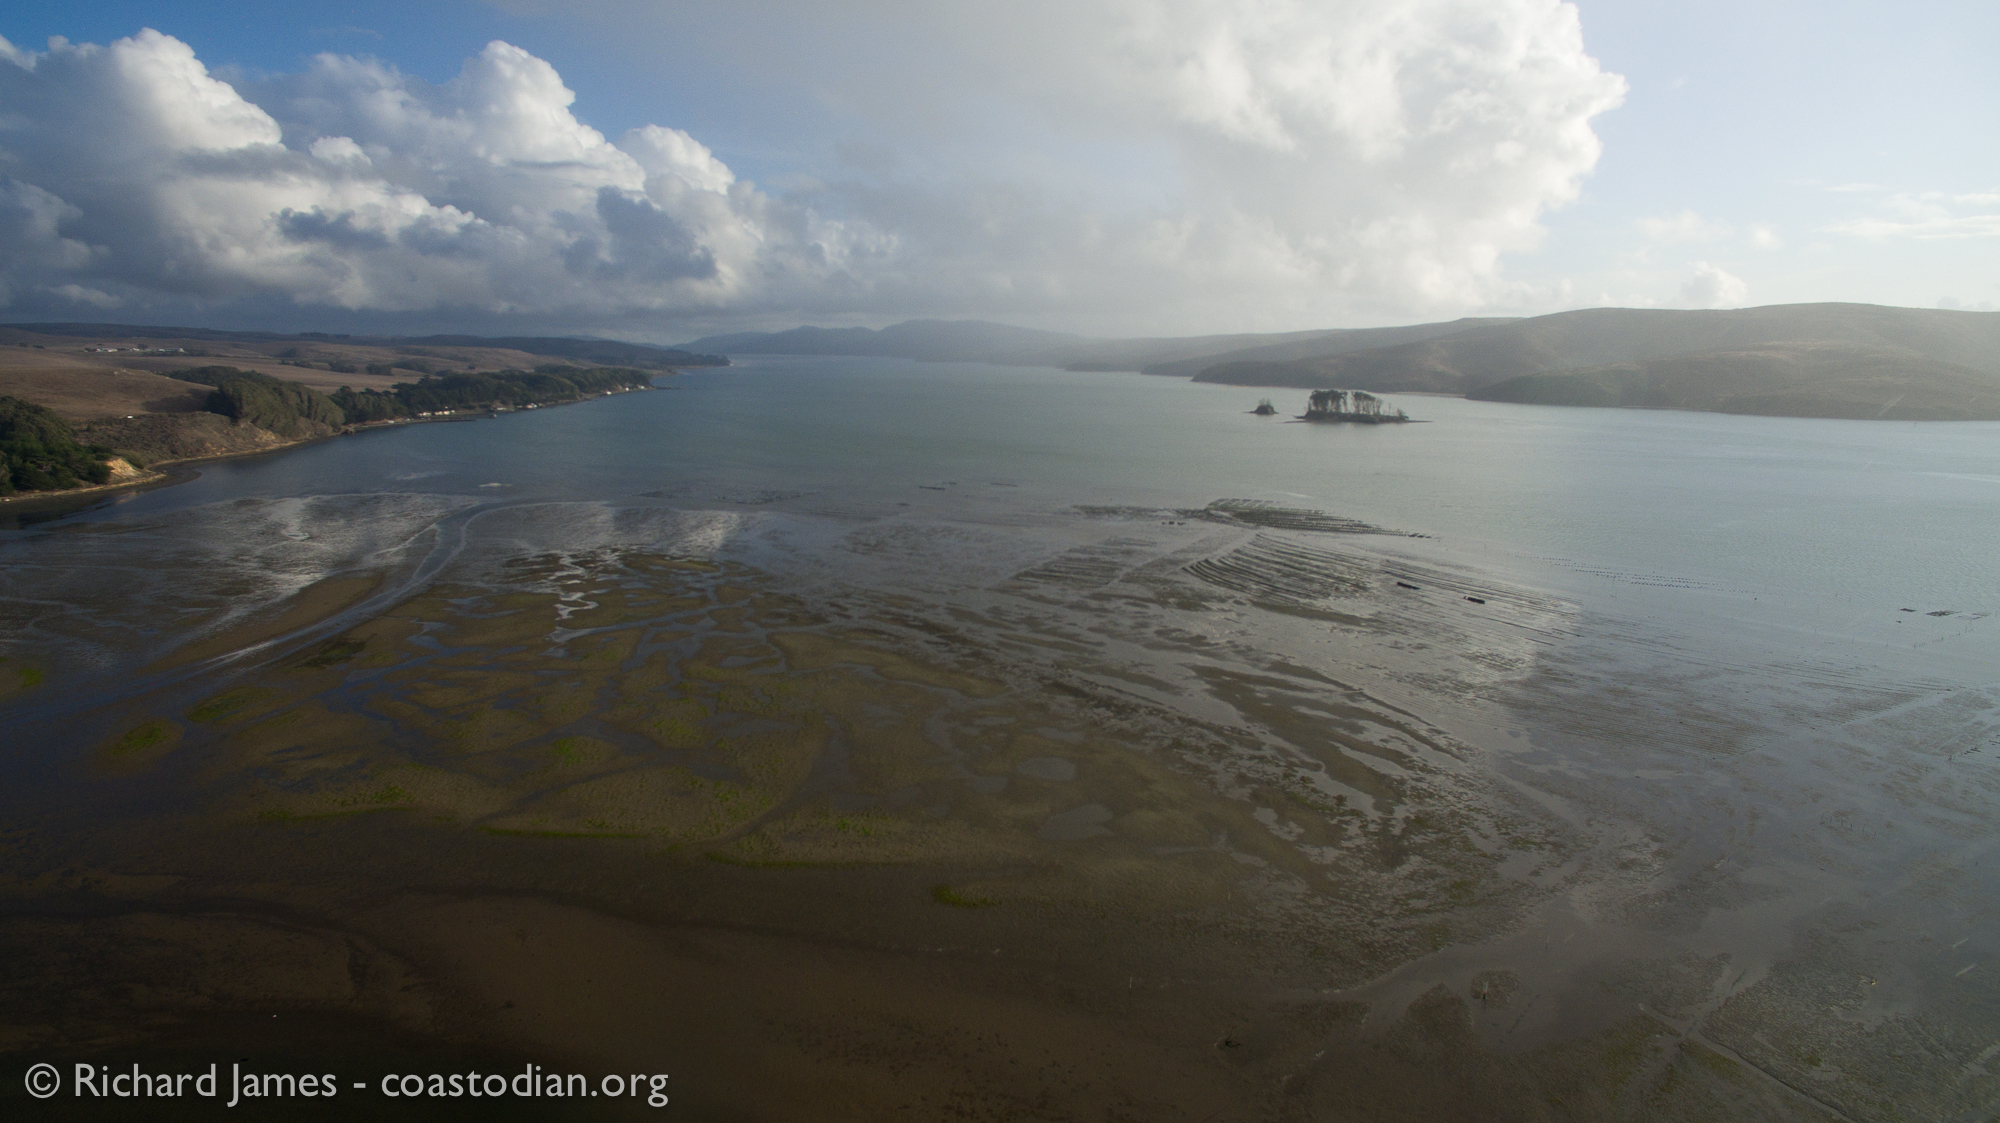 Tomales Bay deserves strong protection from businesses profiting from it.